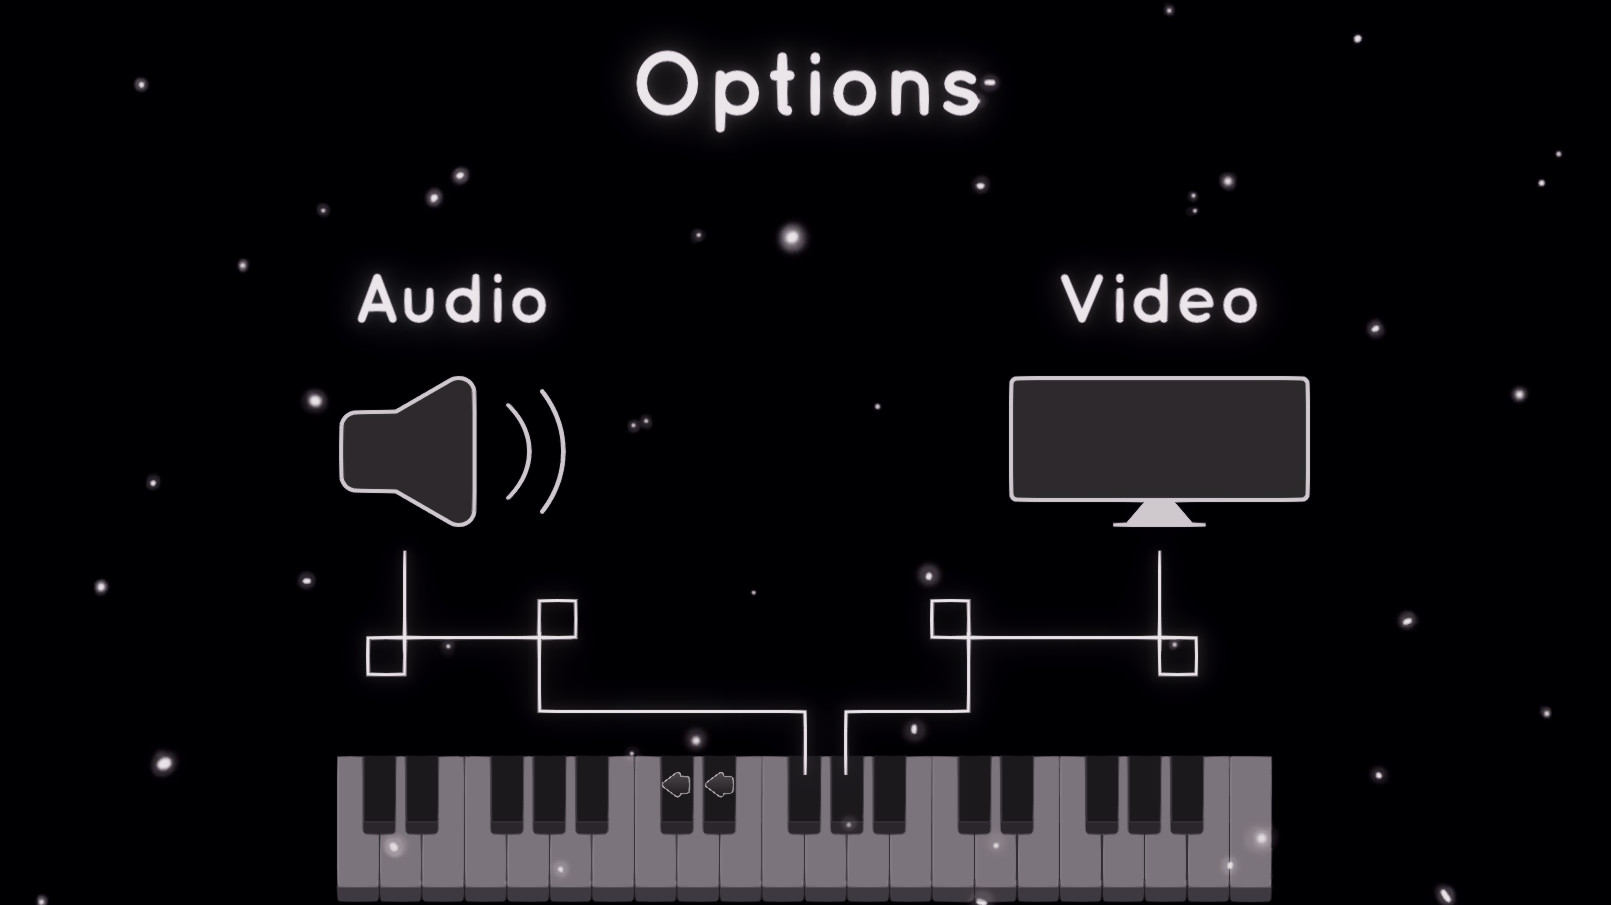 Options Menu. This is where the player can pick to edit audio or video options.